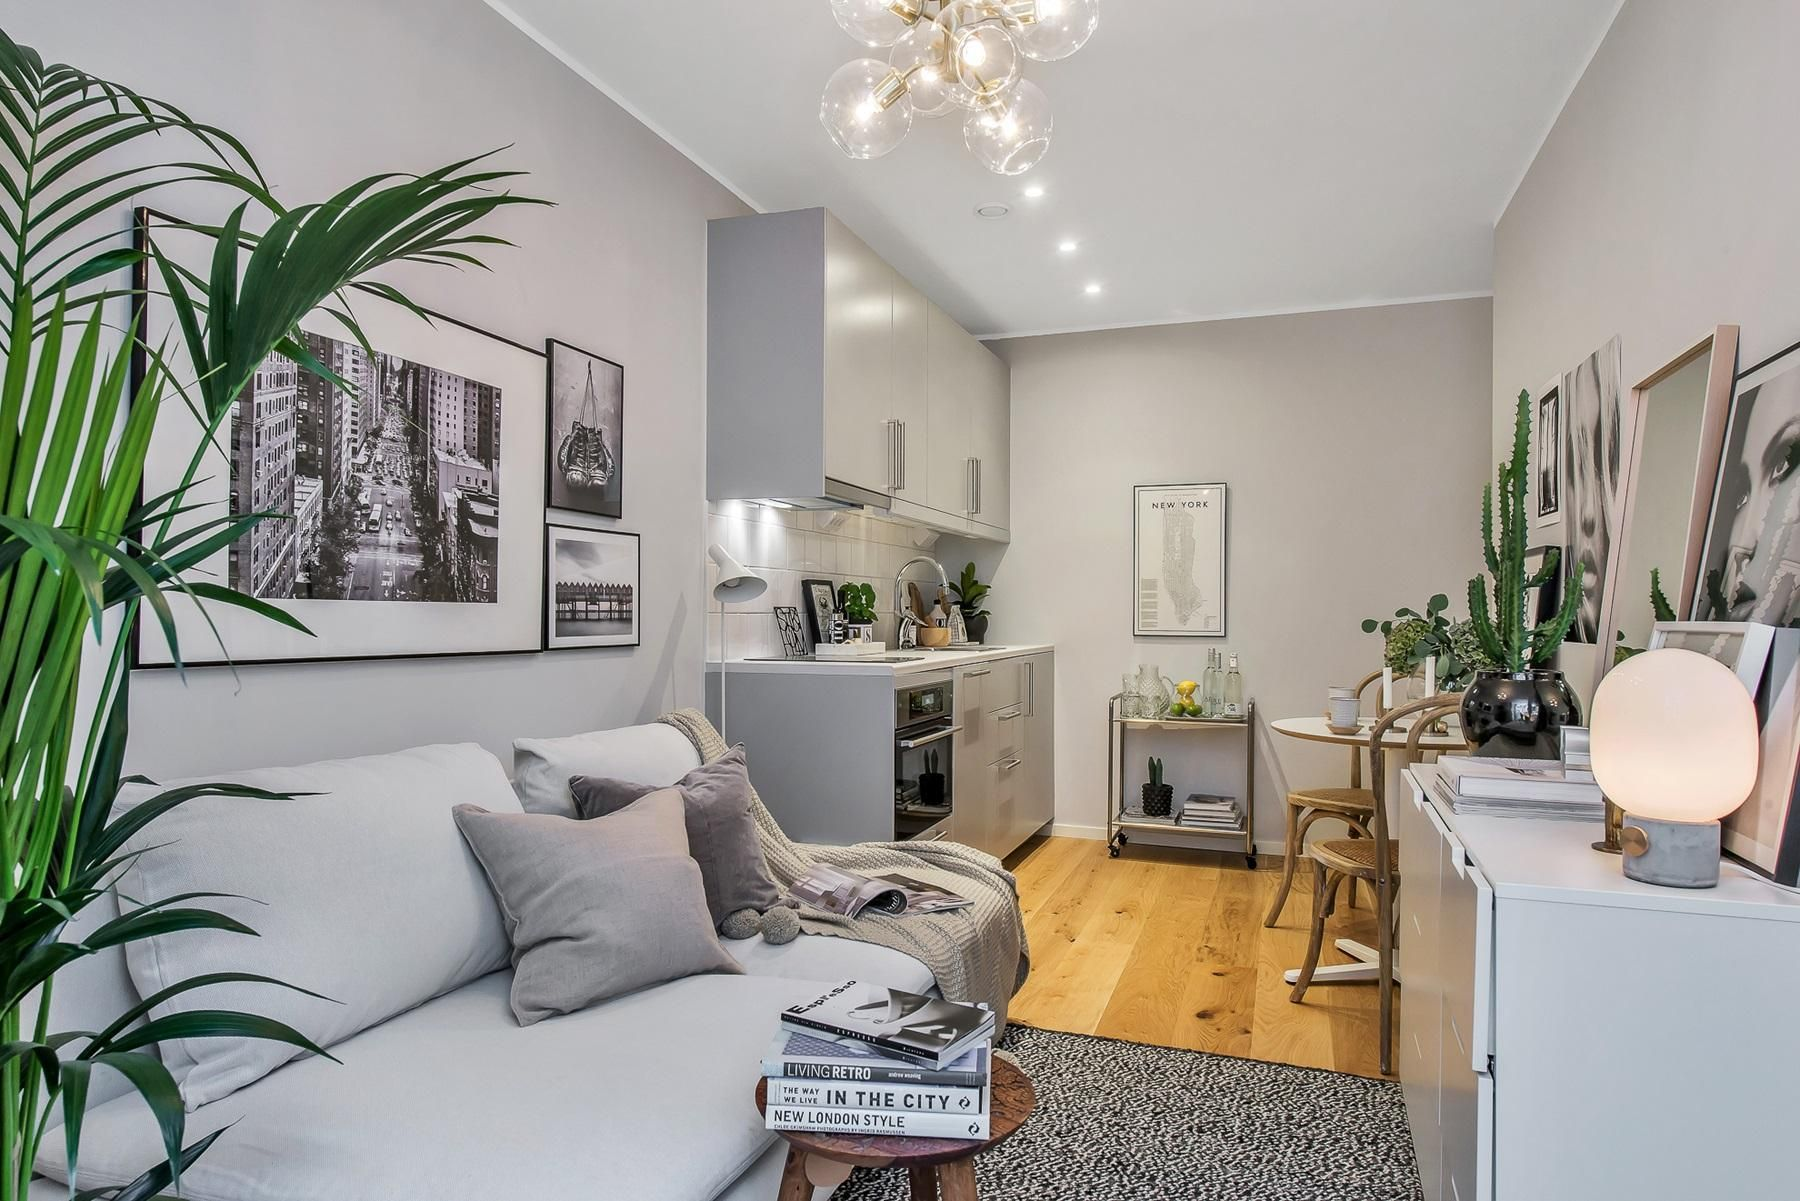 250 Sq Ft Apartment In Paris With Neutral Decor And Gallery Walls Are You Looking For Unique Beautiful Art Photo Prints To Create Your Own